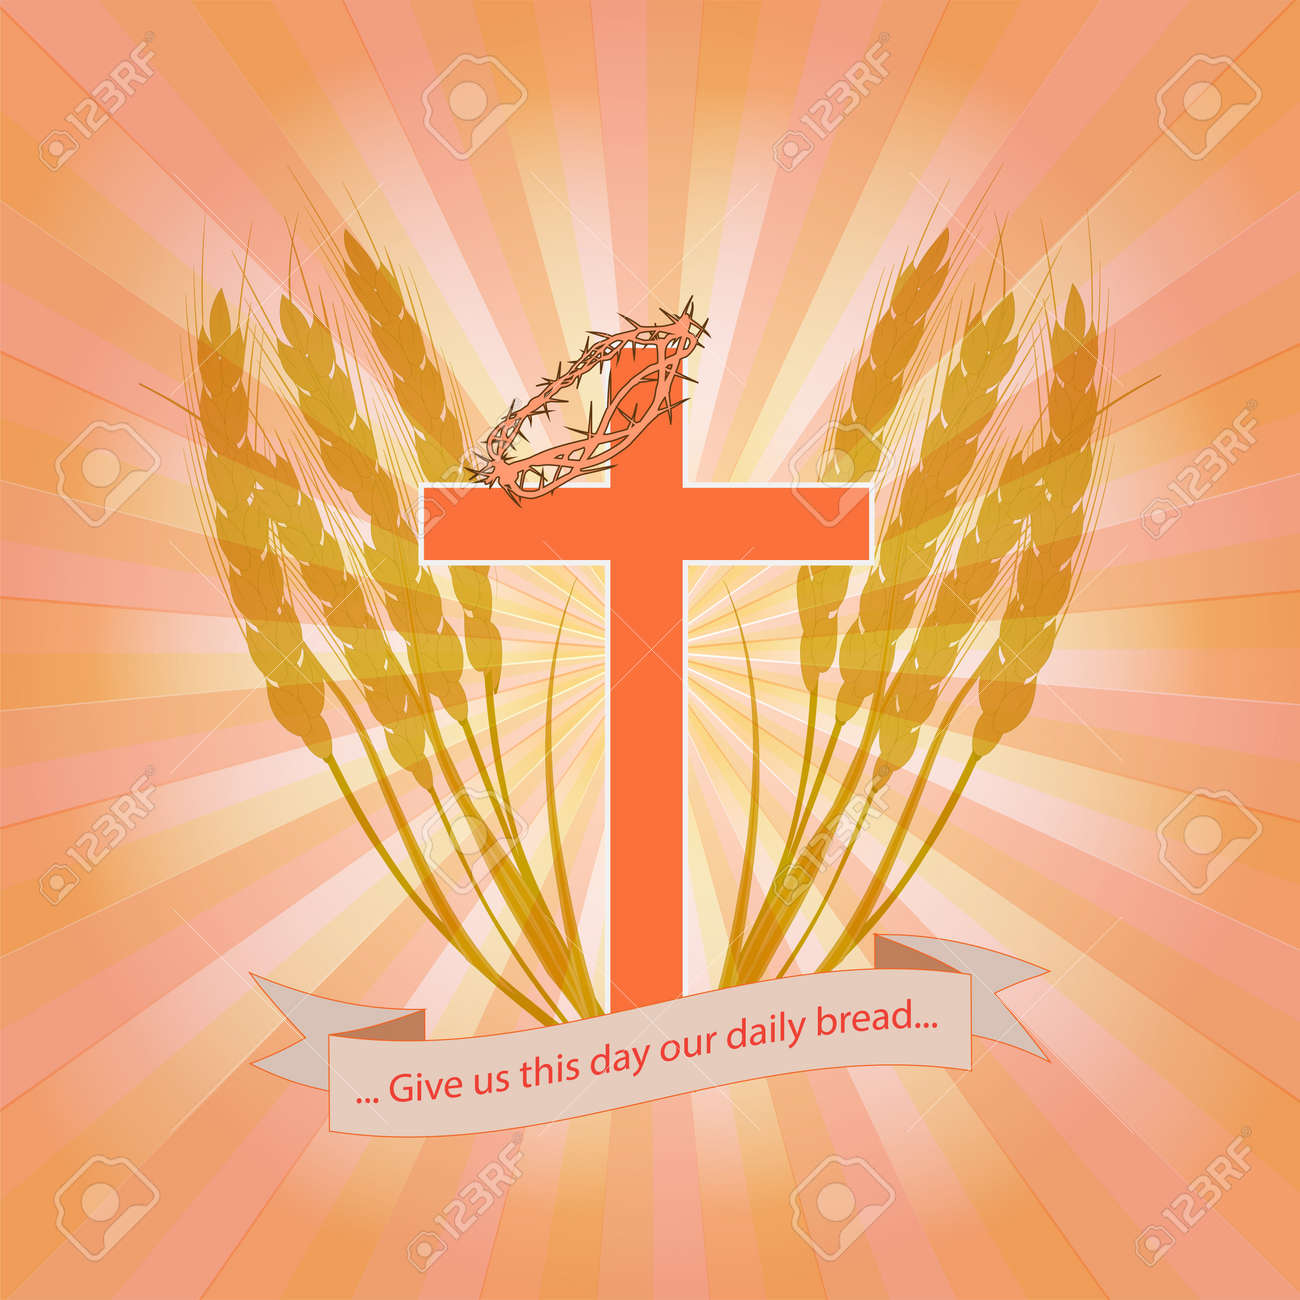 Christian cross with a crown of thorns in wheat ears the christian christian cross with a crown of thorns in wheat ears the christian symbolizes the salvation buycottarizona Choice Image